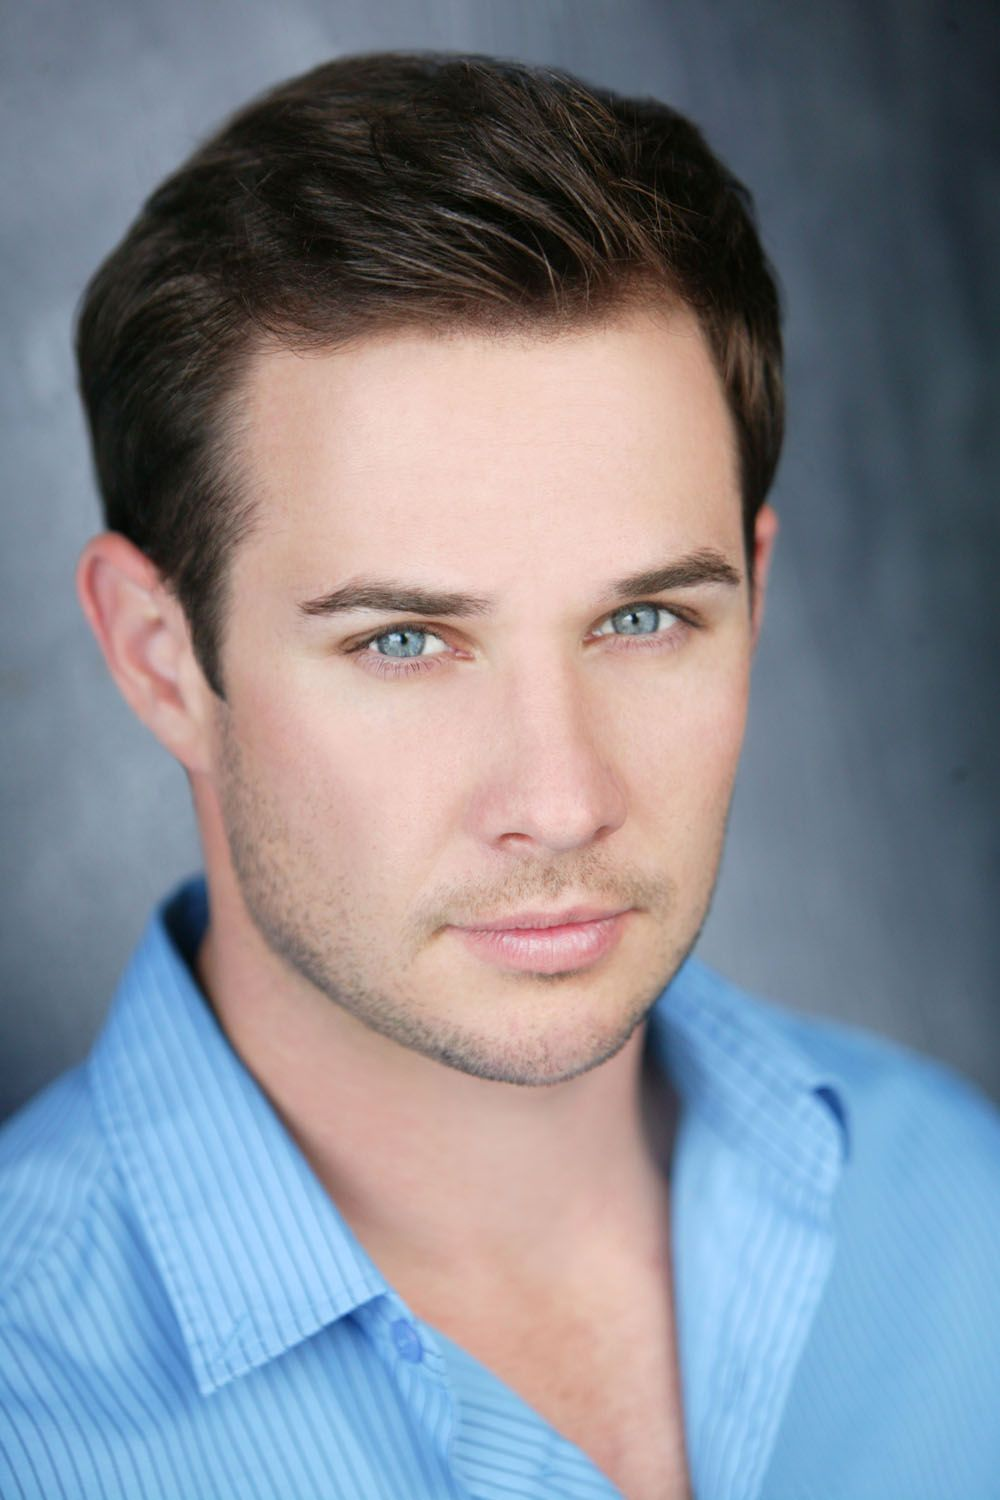 Ryan Merriman - 2018 Dark Brown hair & chic hair style. Current length:  short hair